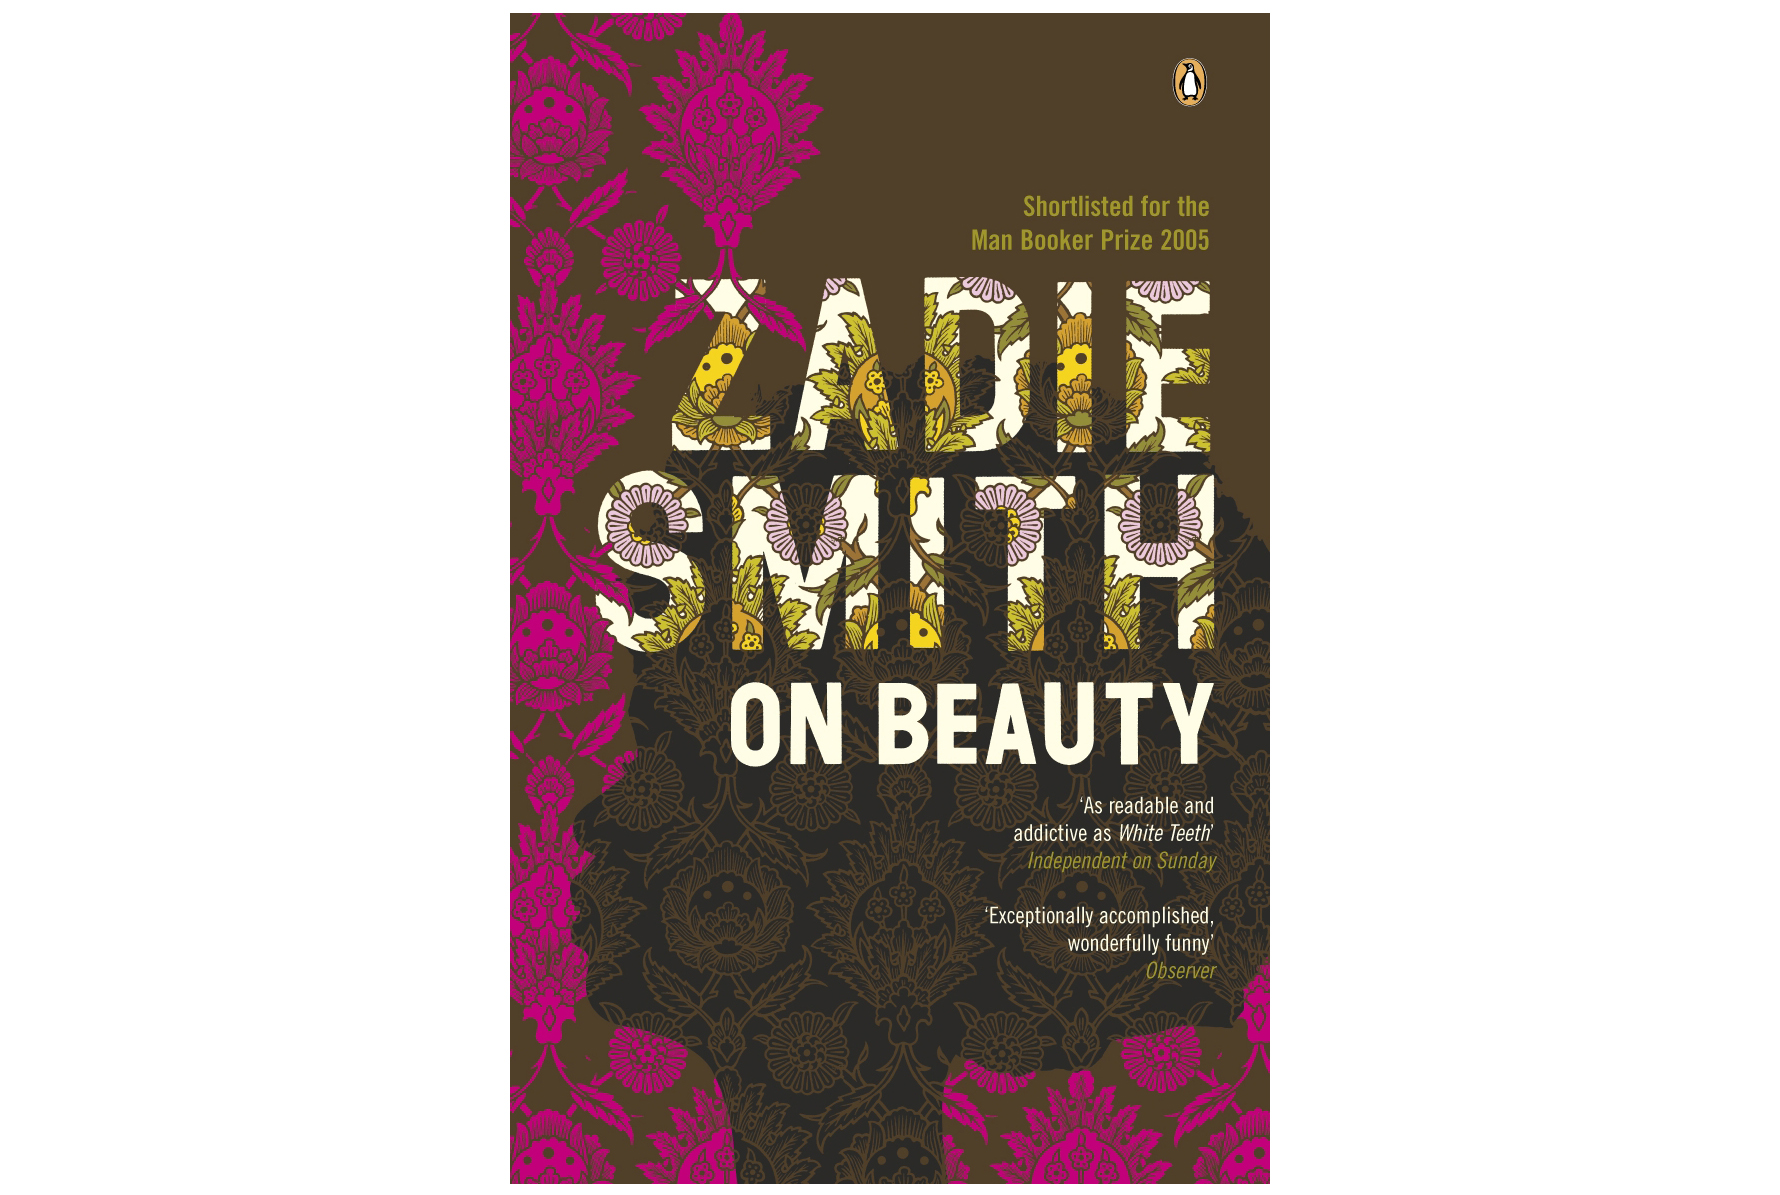 On Beauty, by Zadie Smith